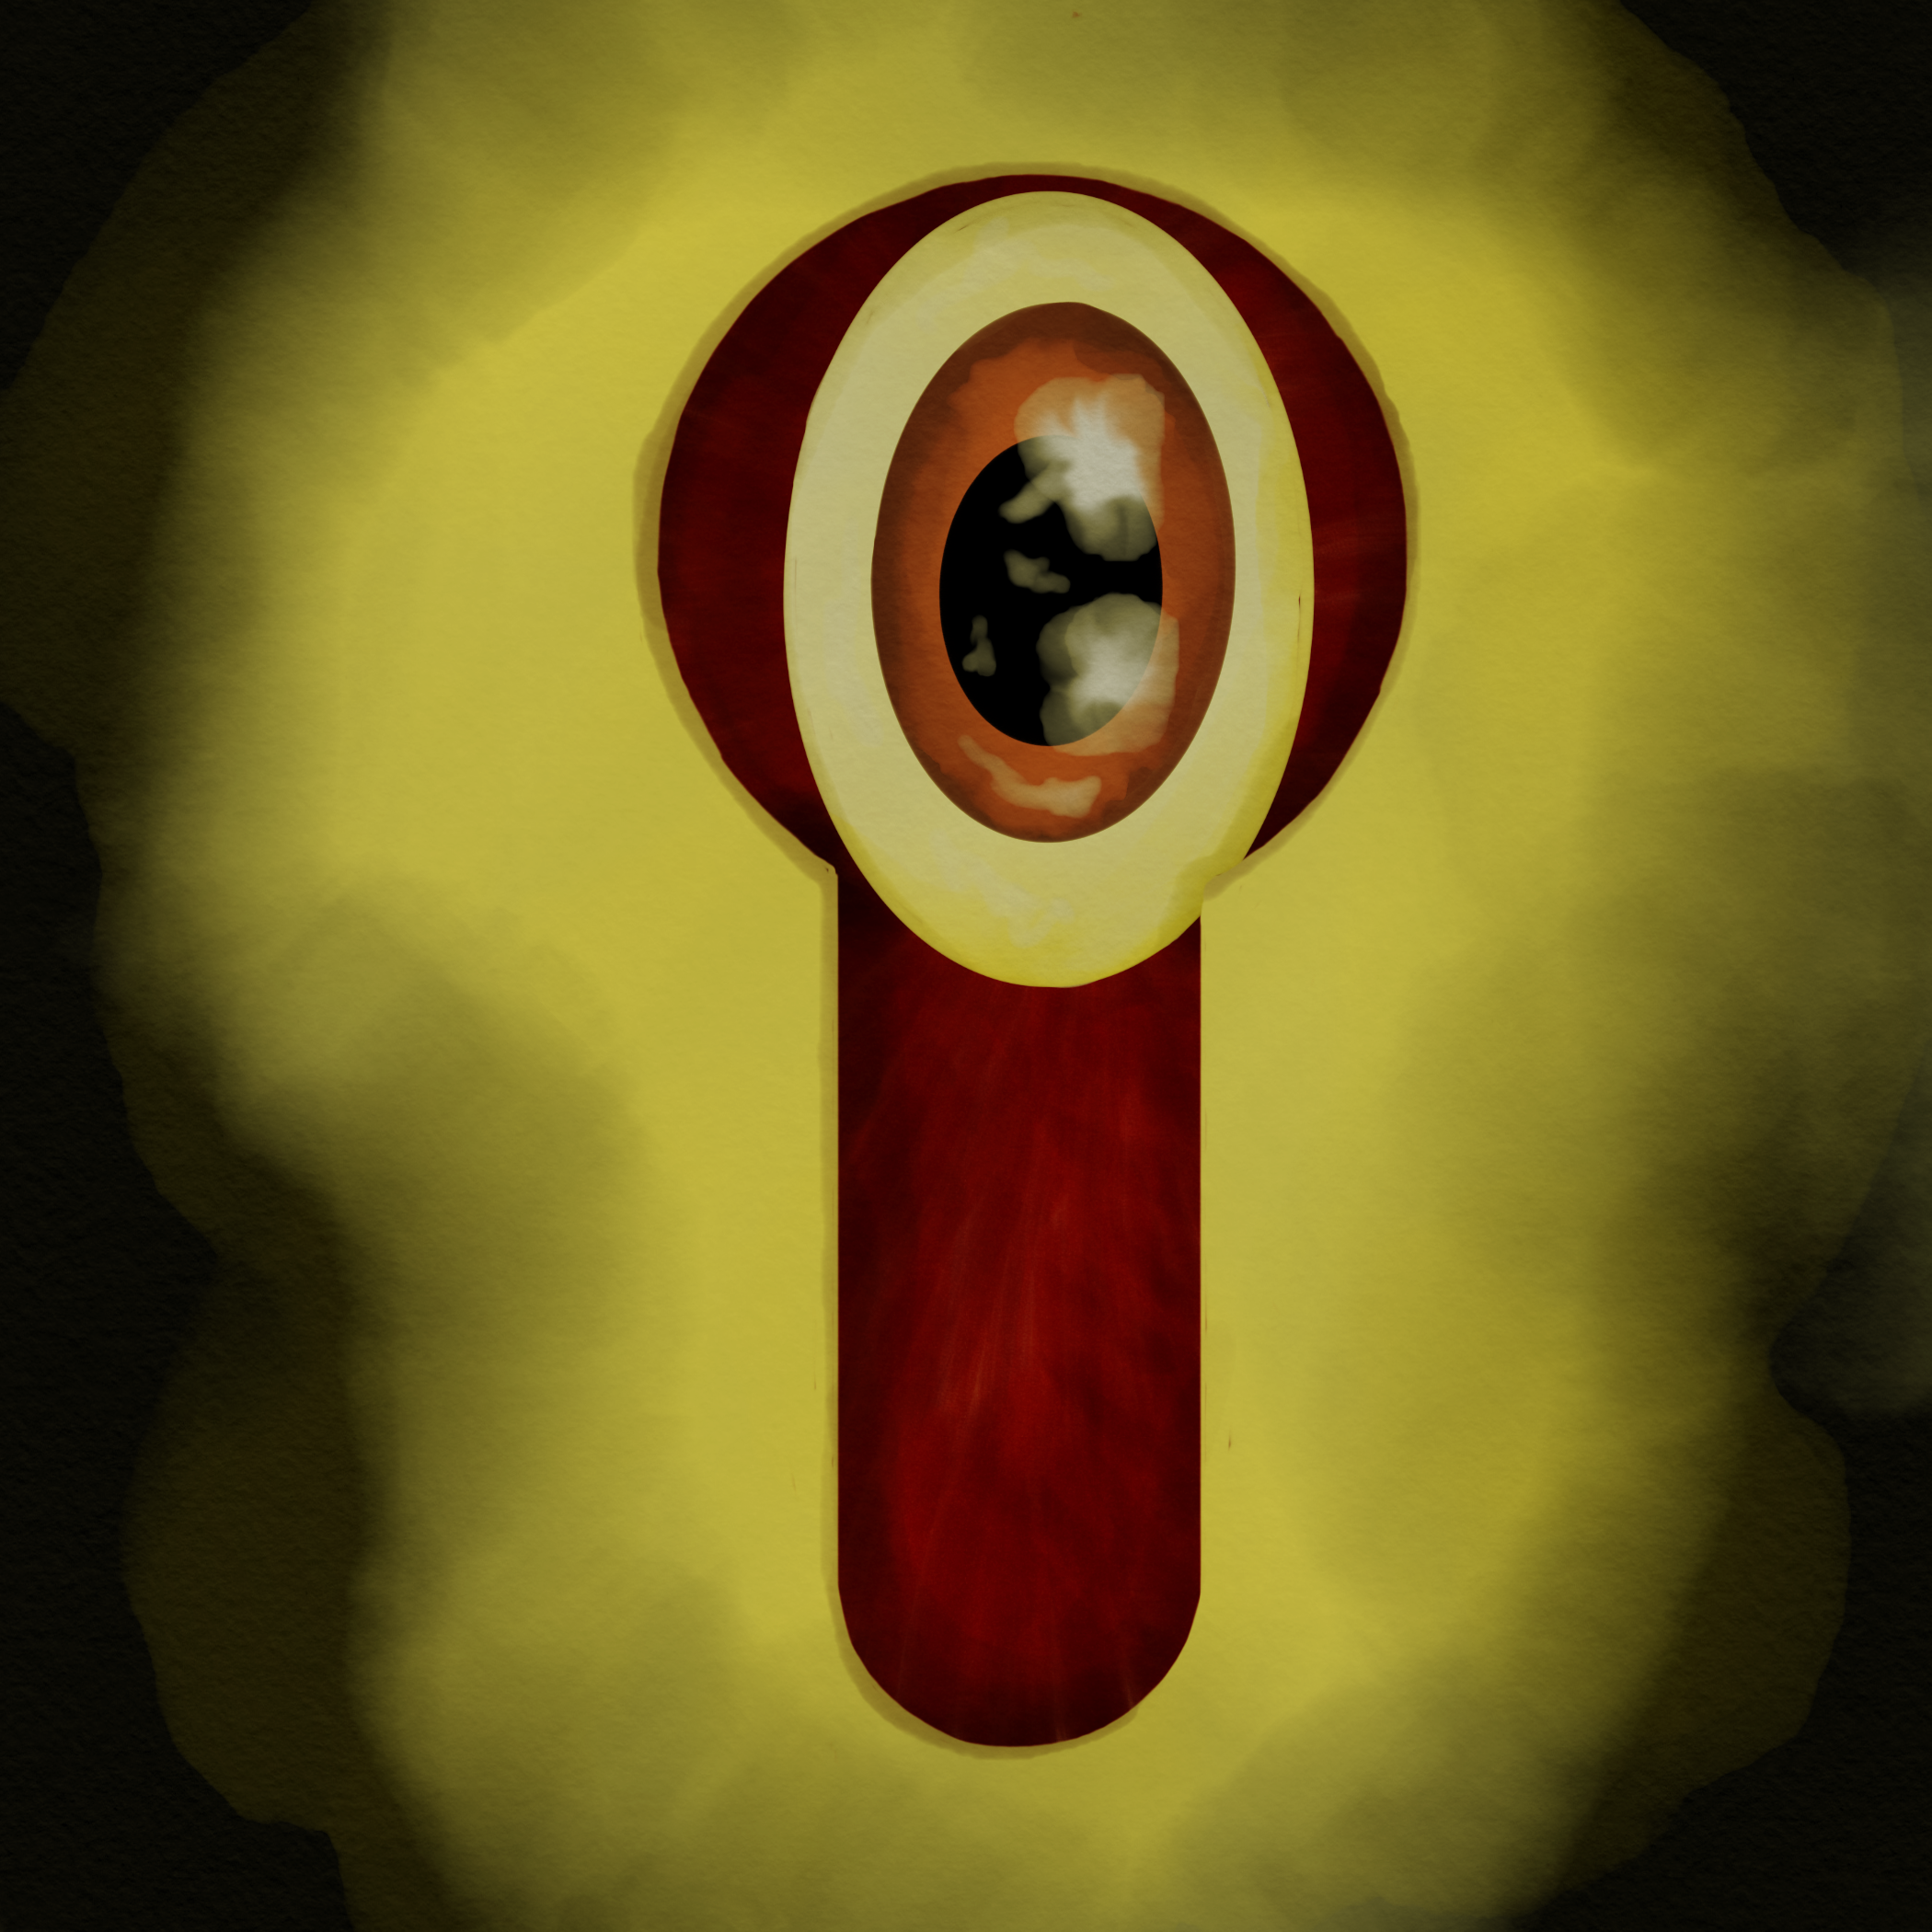 PNG image-F00BF7285230-1.png